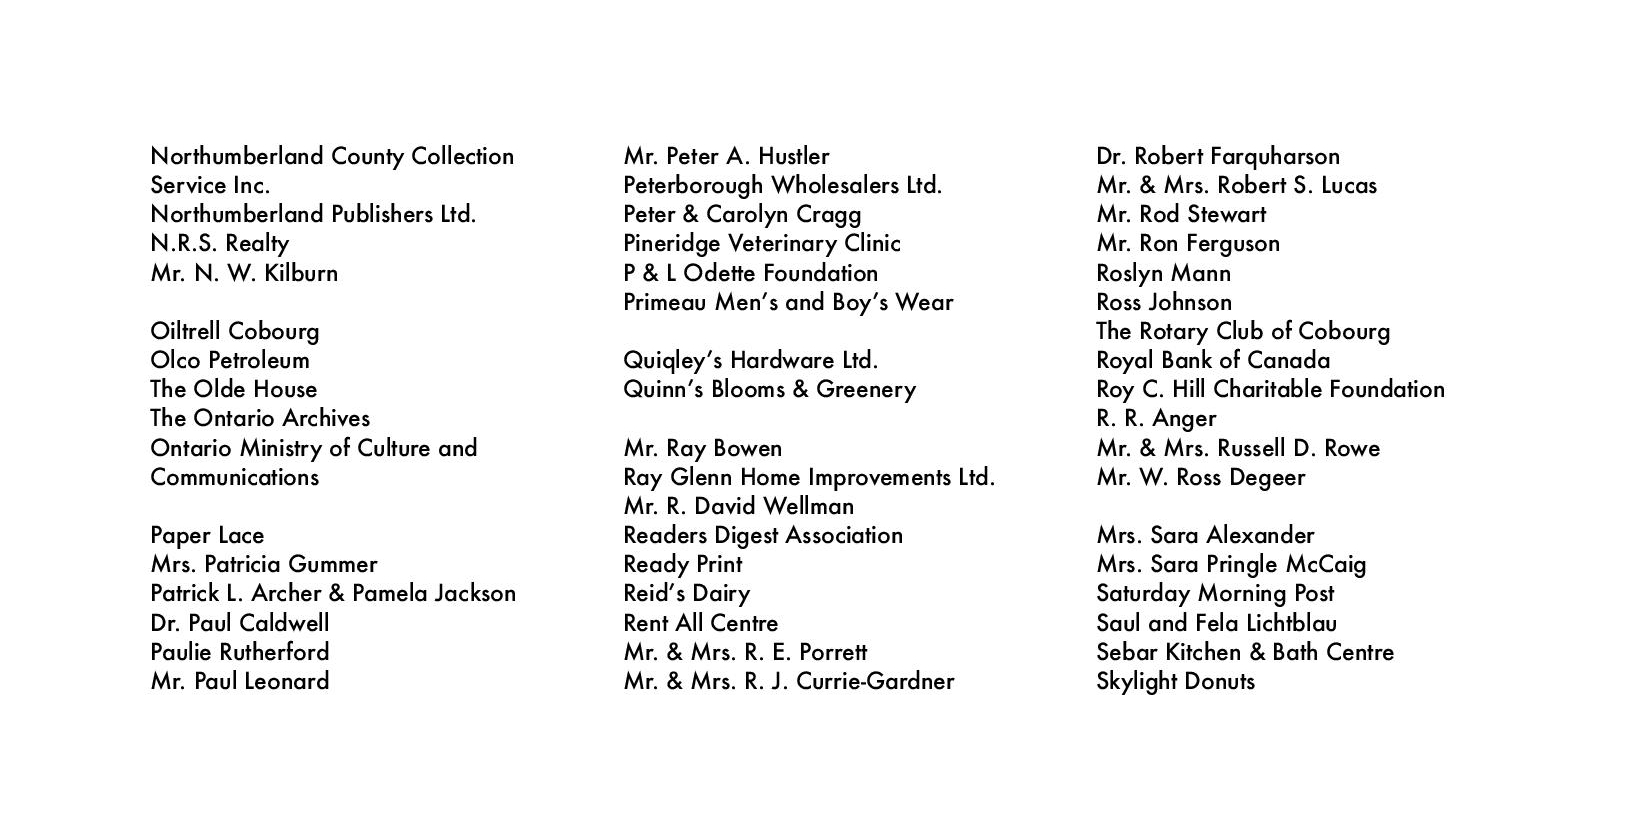 Donors-page-005.jpg